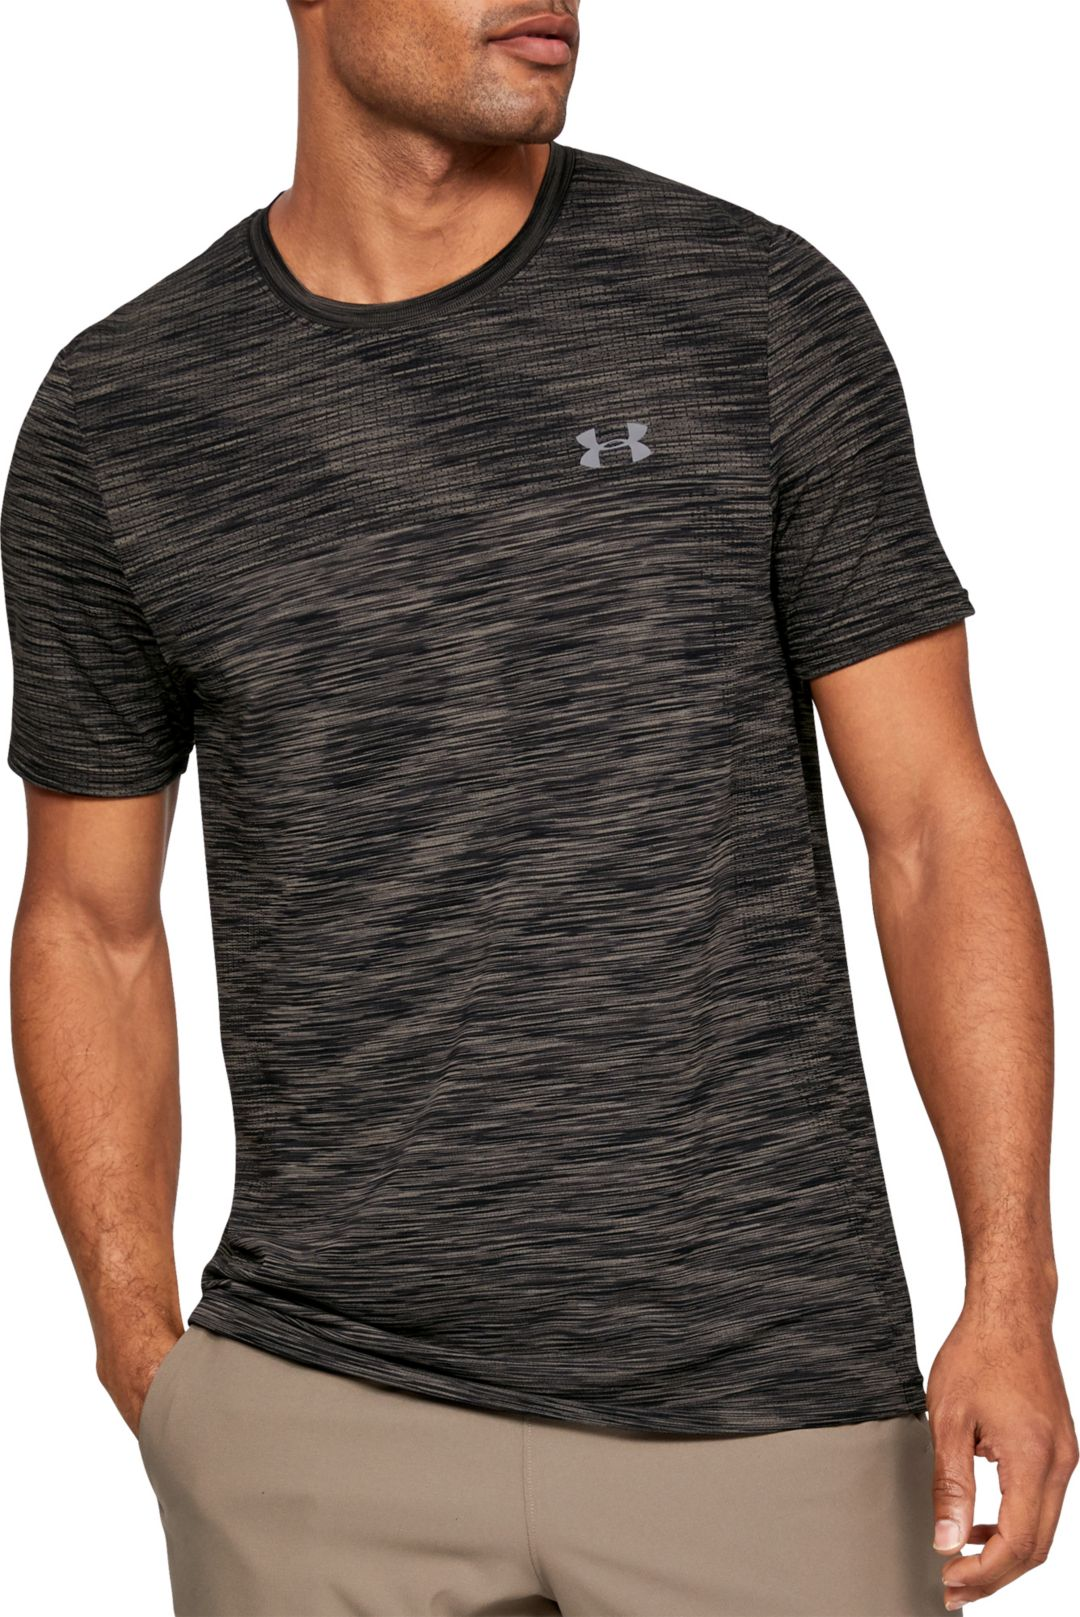 7f2de564e Under Armour Men's Vanish Seamless T-Shirt. noImageFound. Previous. 1